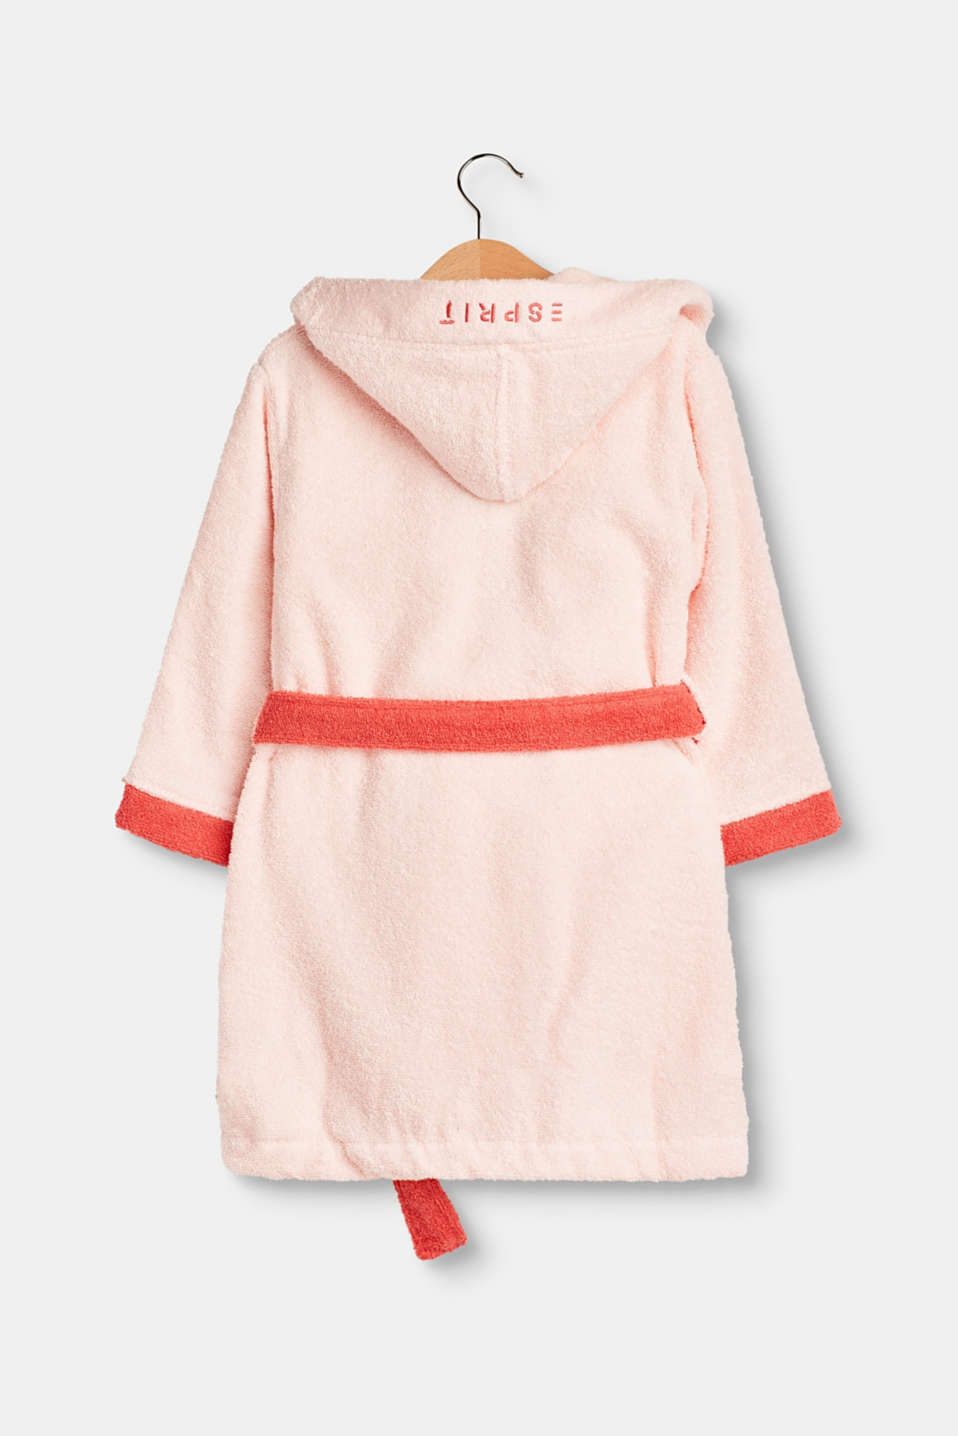 Children's coat in 100% cotton